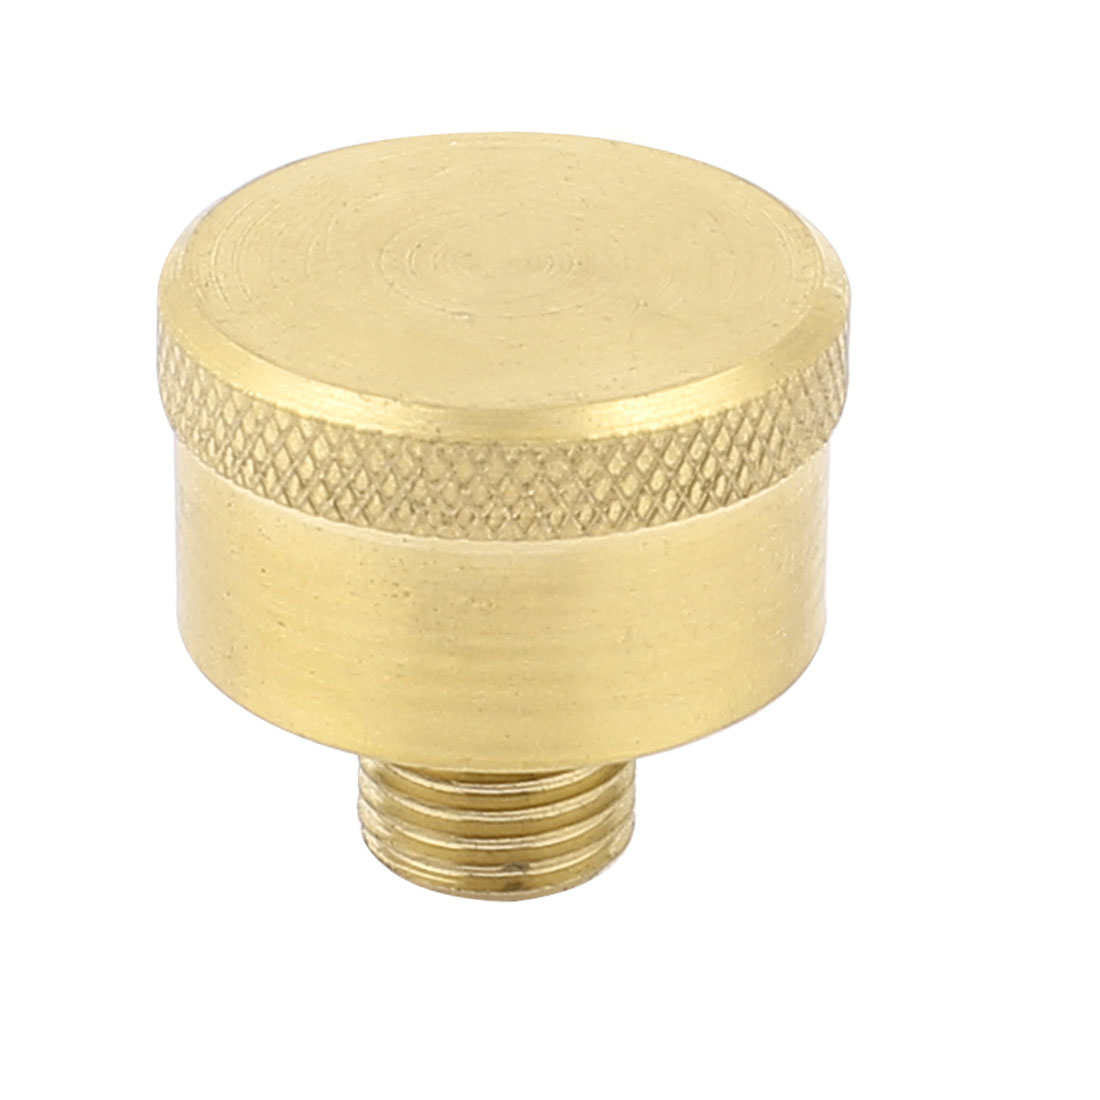 Replacement Oil Lubrication 1/4 NPT Male Thread Grease Cup Cap